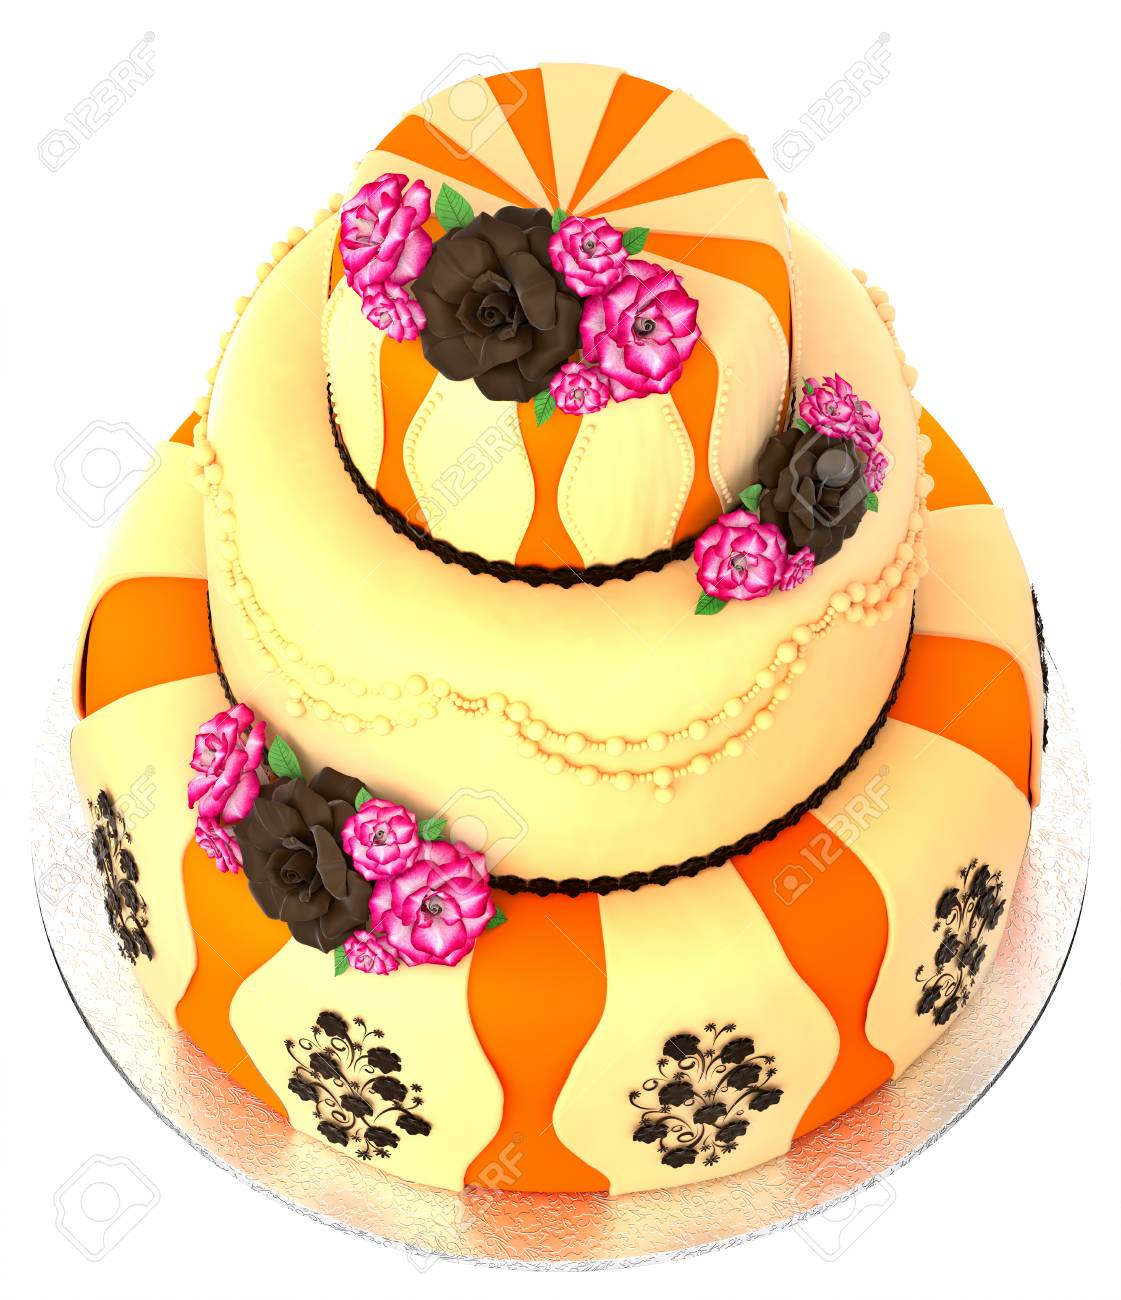 Three Tier Cake With 3 Layer Decorated Chocolate Rose And Flowers Top View Birthday Or Wedding Tired Pie Orange Yellow Slice For Event Holidays On